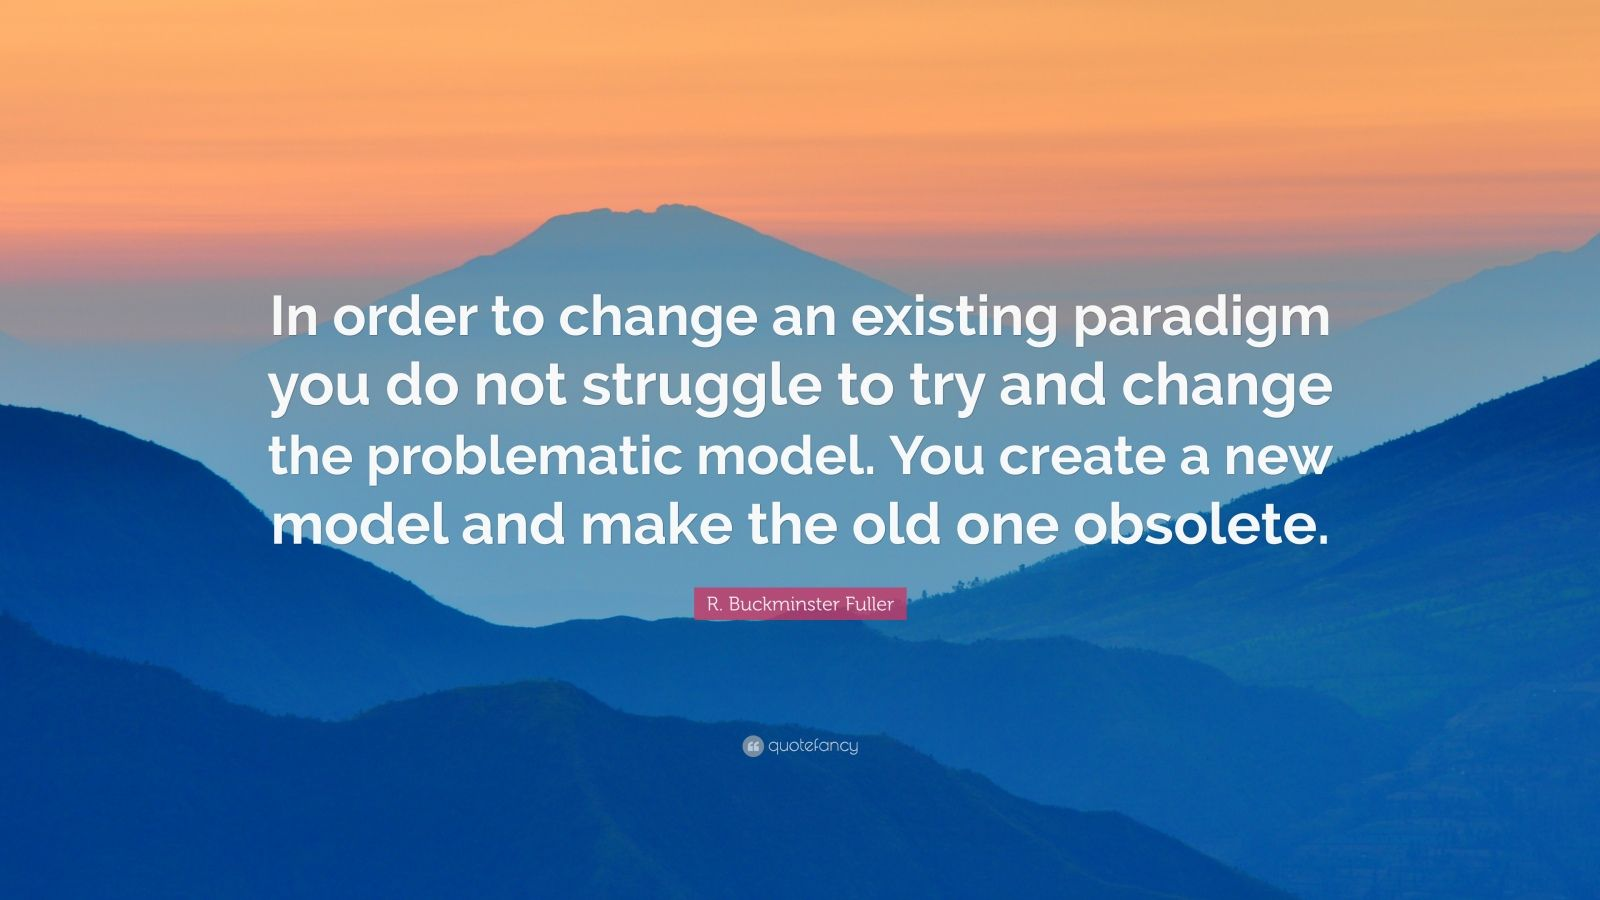 """R. Buckminster Fuller Quote: """"In order to change an existing paradigm you do not struggle to try and change the problematic model. You create a new model and make the old one obsolete."""""""